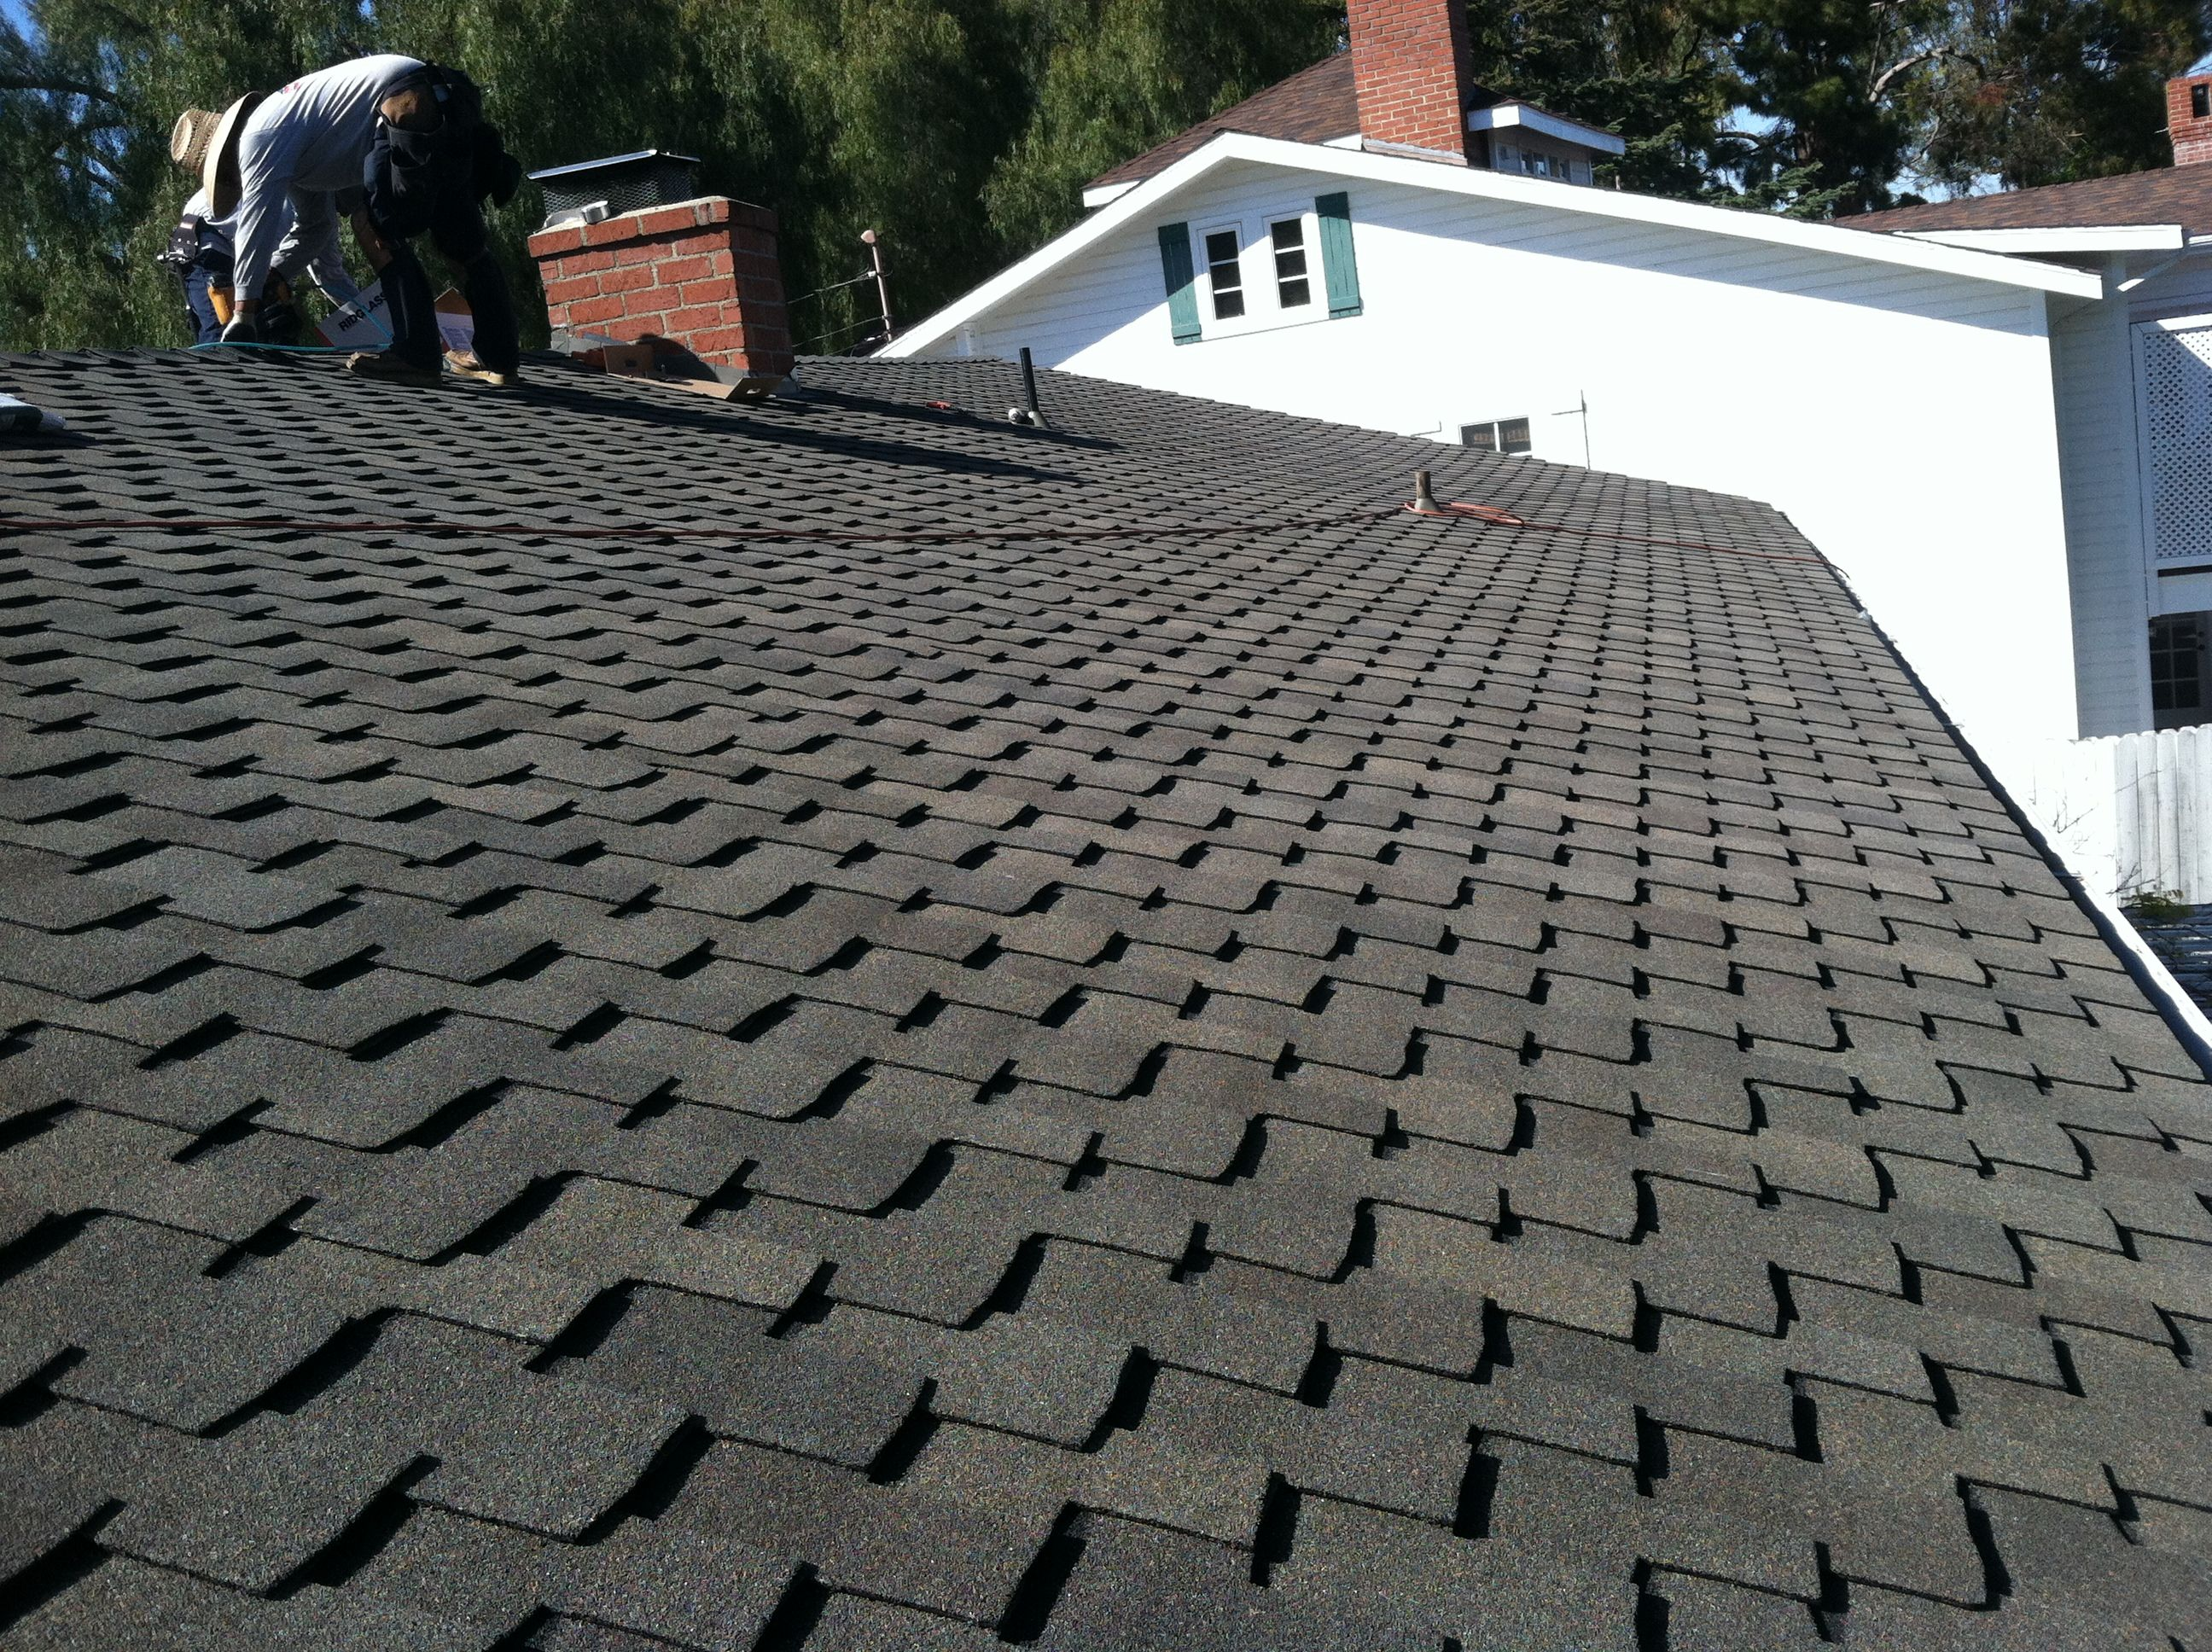 Www Chandlersroofing Com Gaf Grand Sequoia Roofing System